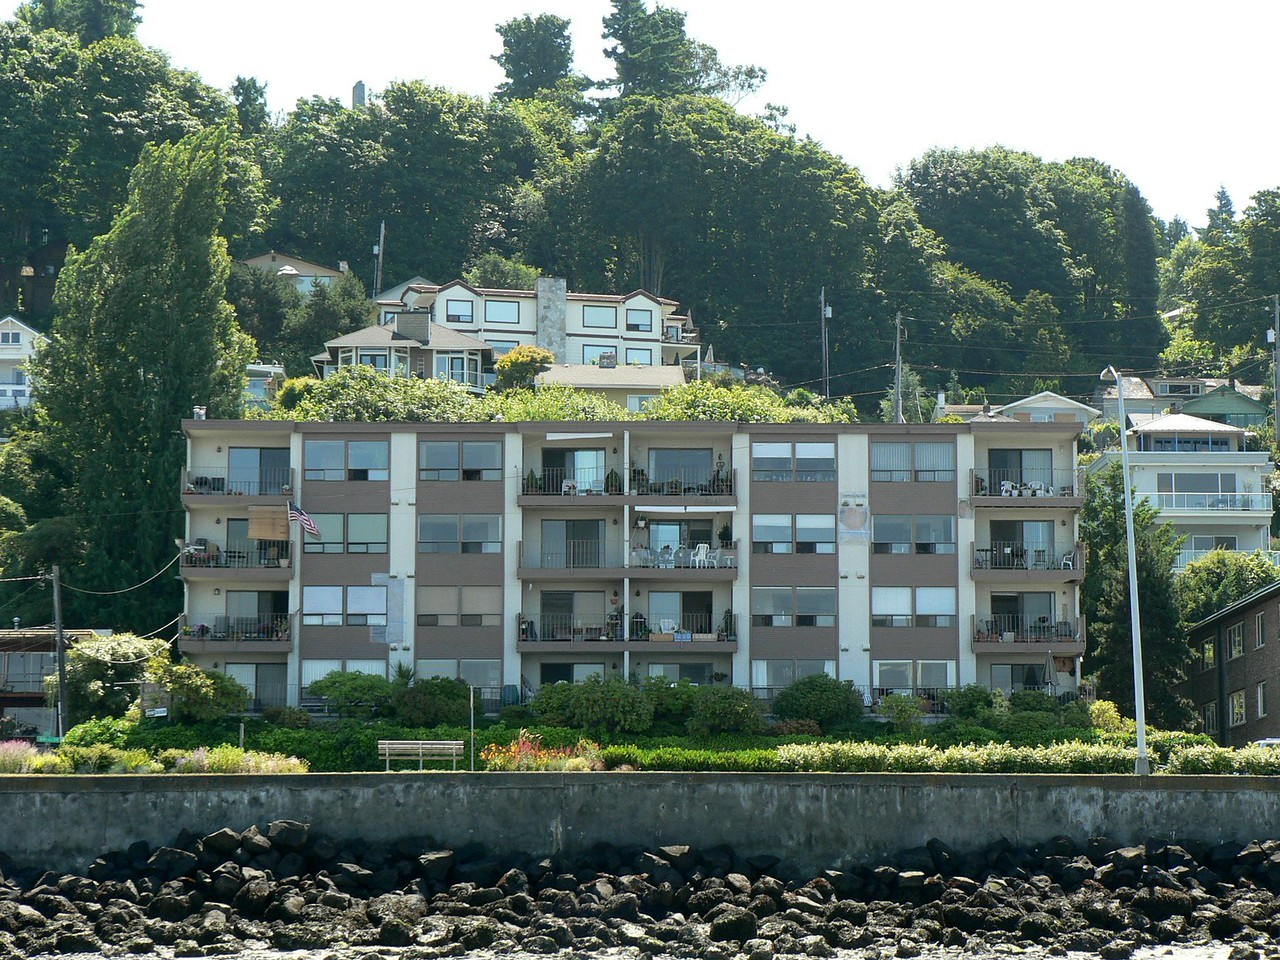 Alki Bonair Condo.  Right middle, second from bottm is #202